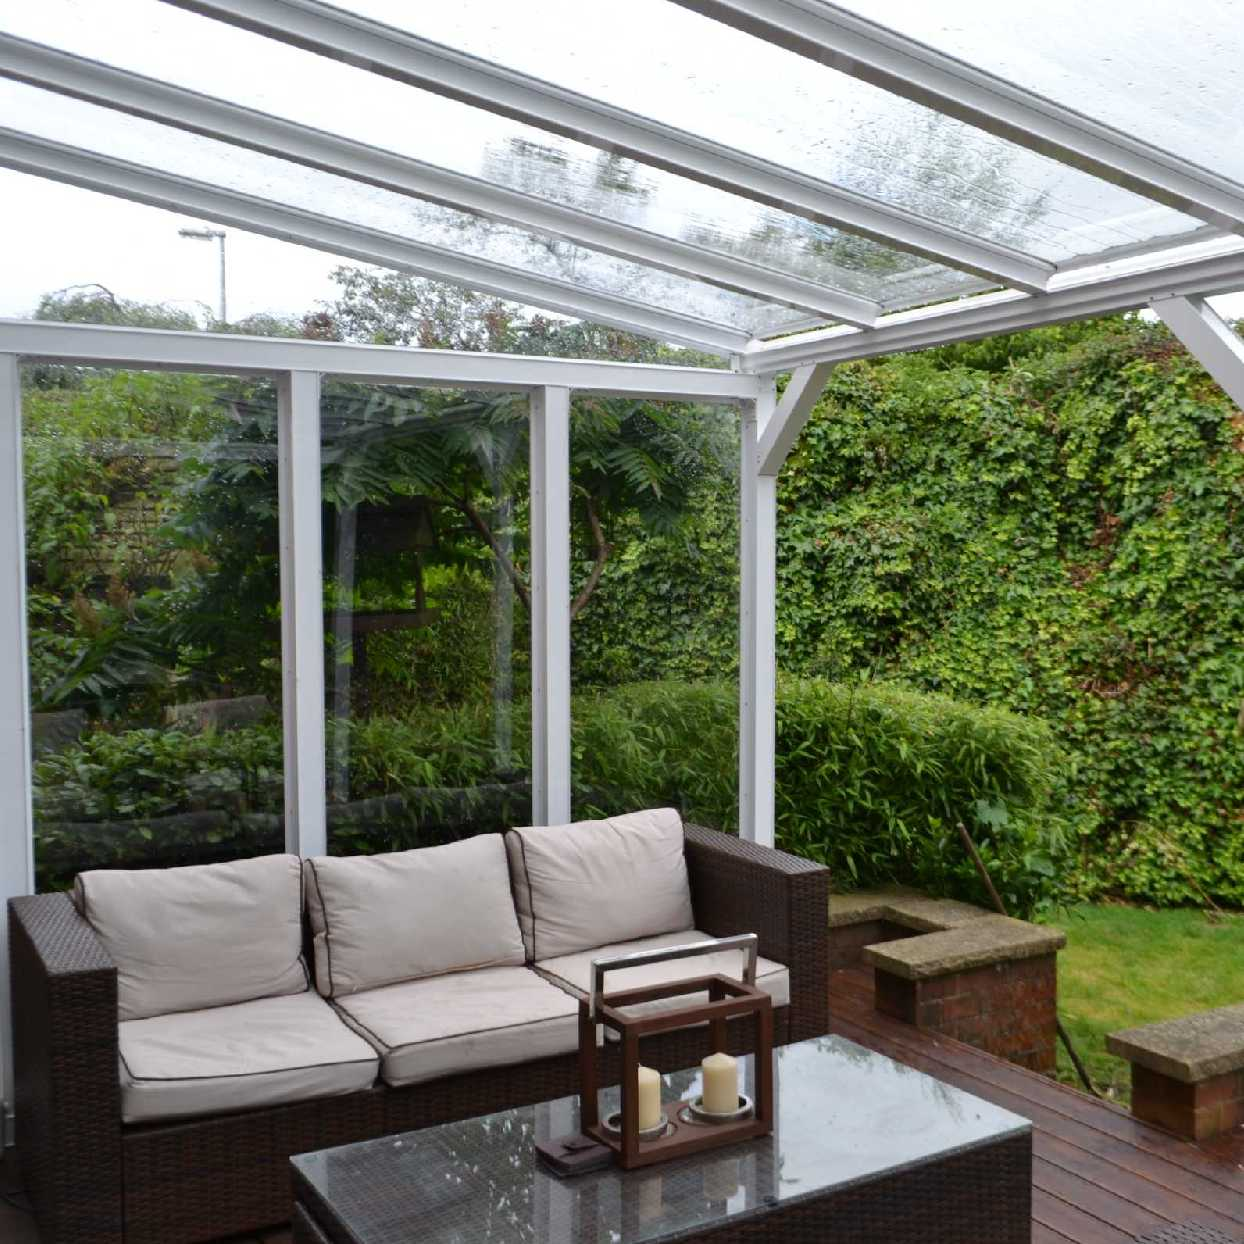 Great selection of Omega Smart Lean-To Canopy with 16mm Polycarbonate Glazing - 4.2m (W) x 4.0m (P), (3) Supporting Posts